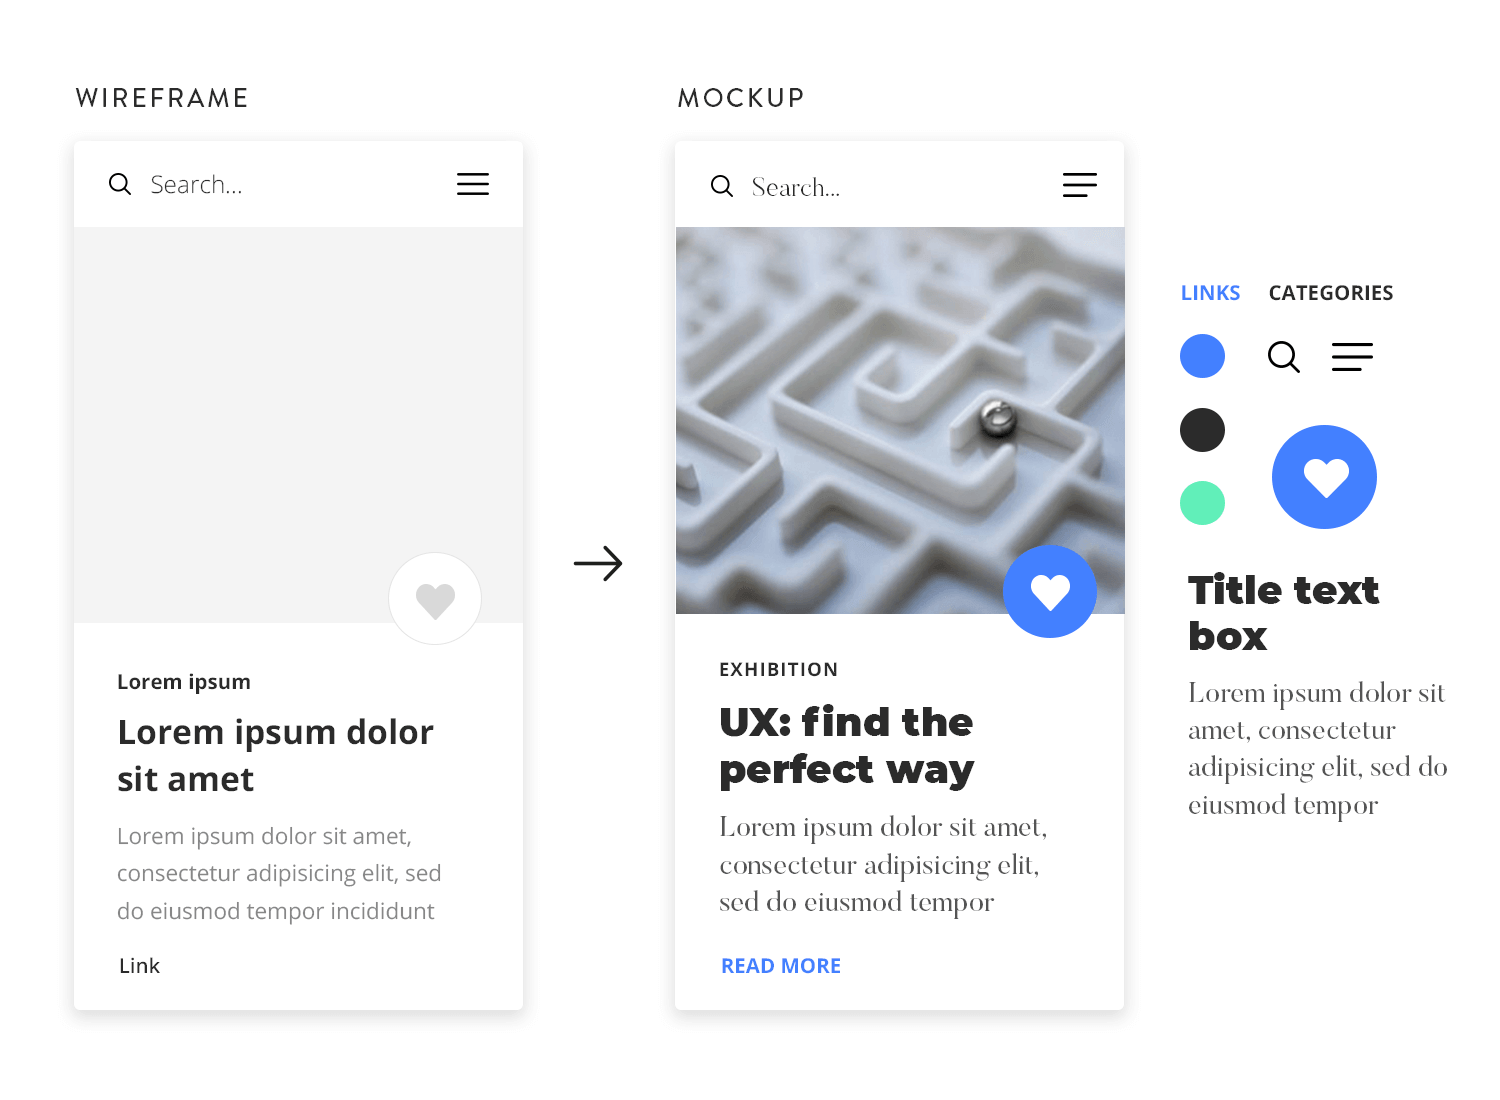 example of visual difference between mobile wireframe and mockup